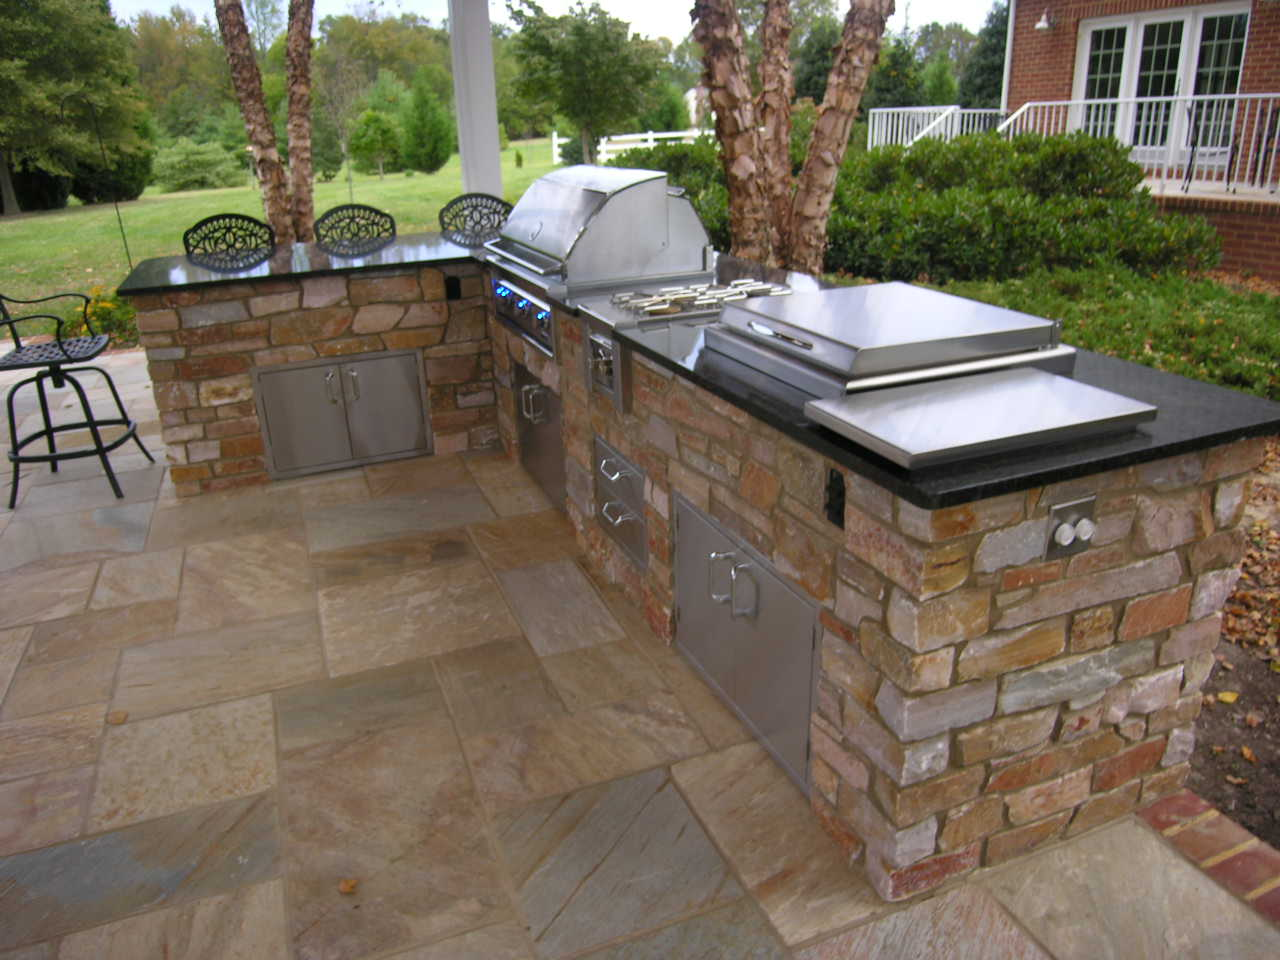 Outdoor kitchens  this aint my dads backyard grill  We build decks sunrooms screened